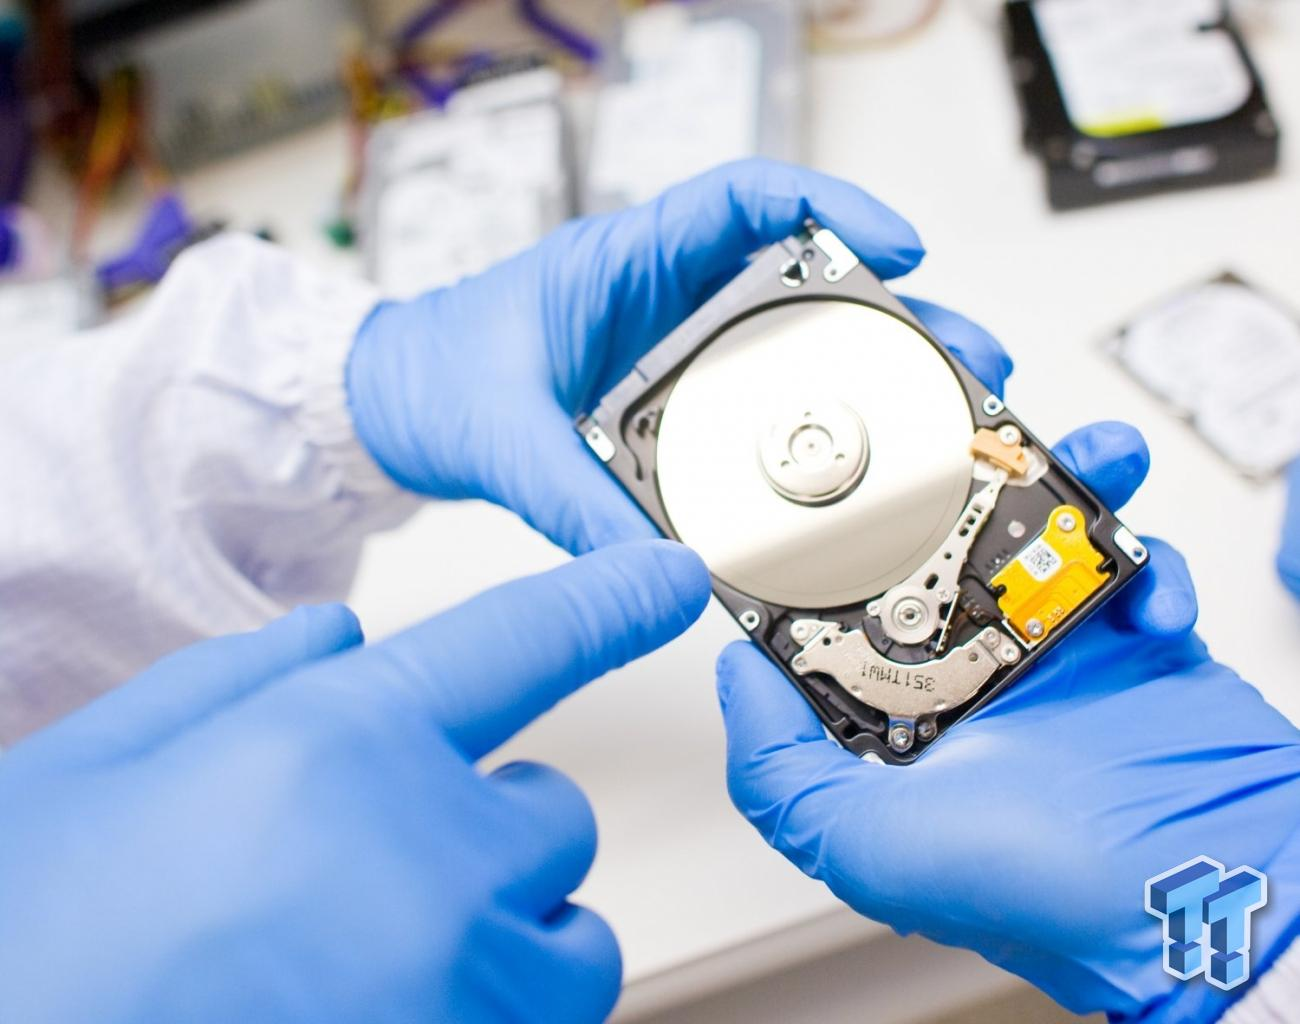 COMPUTER HARD DRIVE RECOVERY